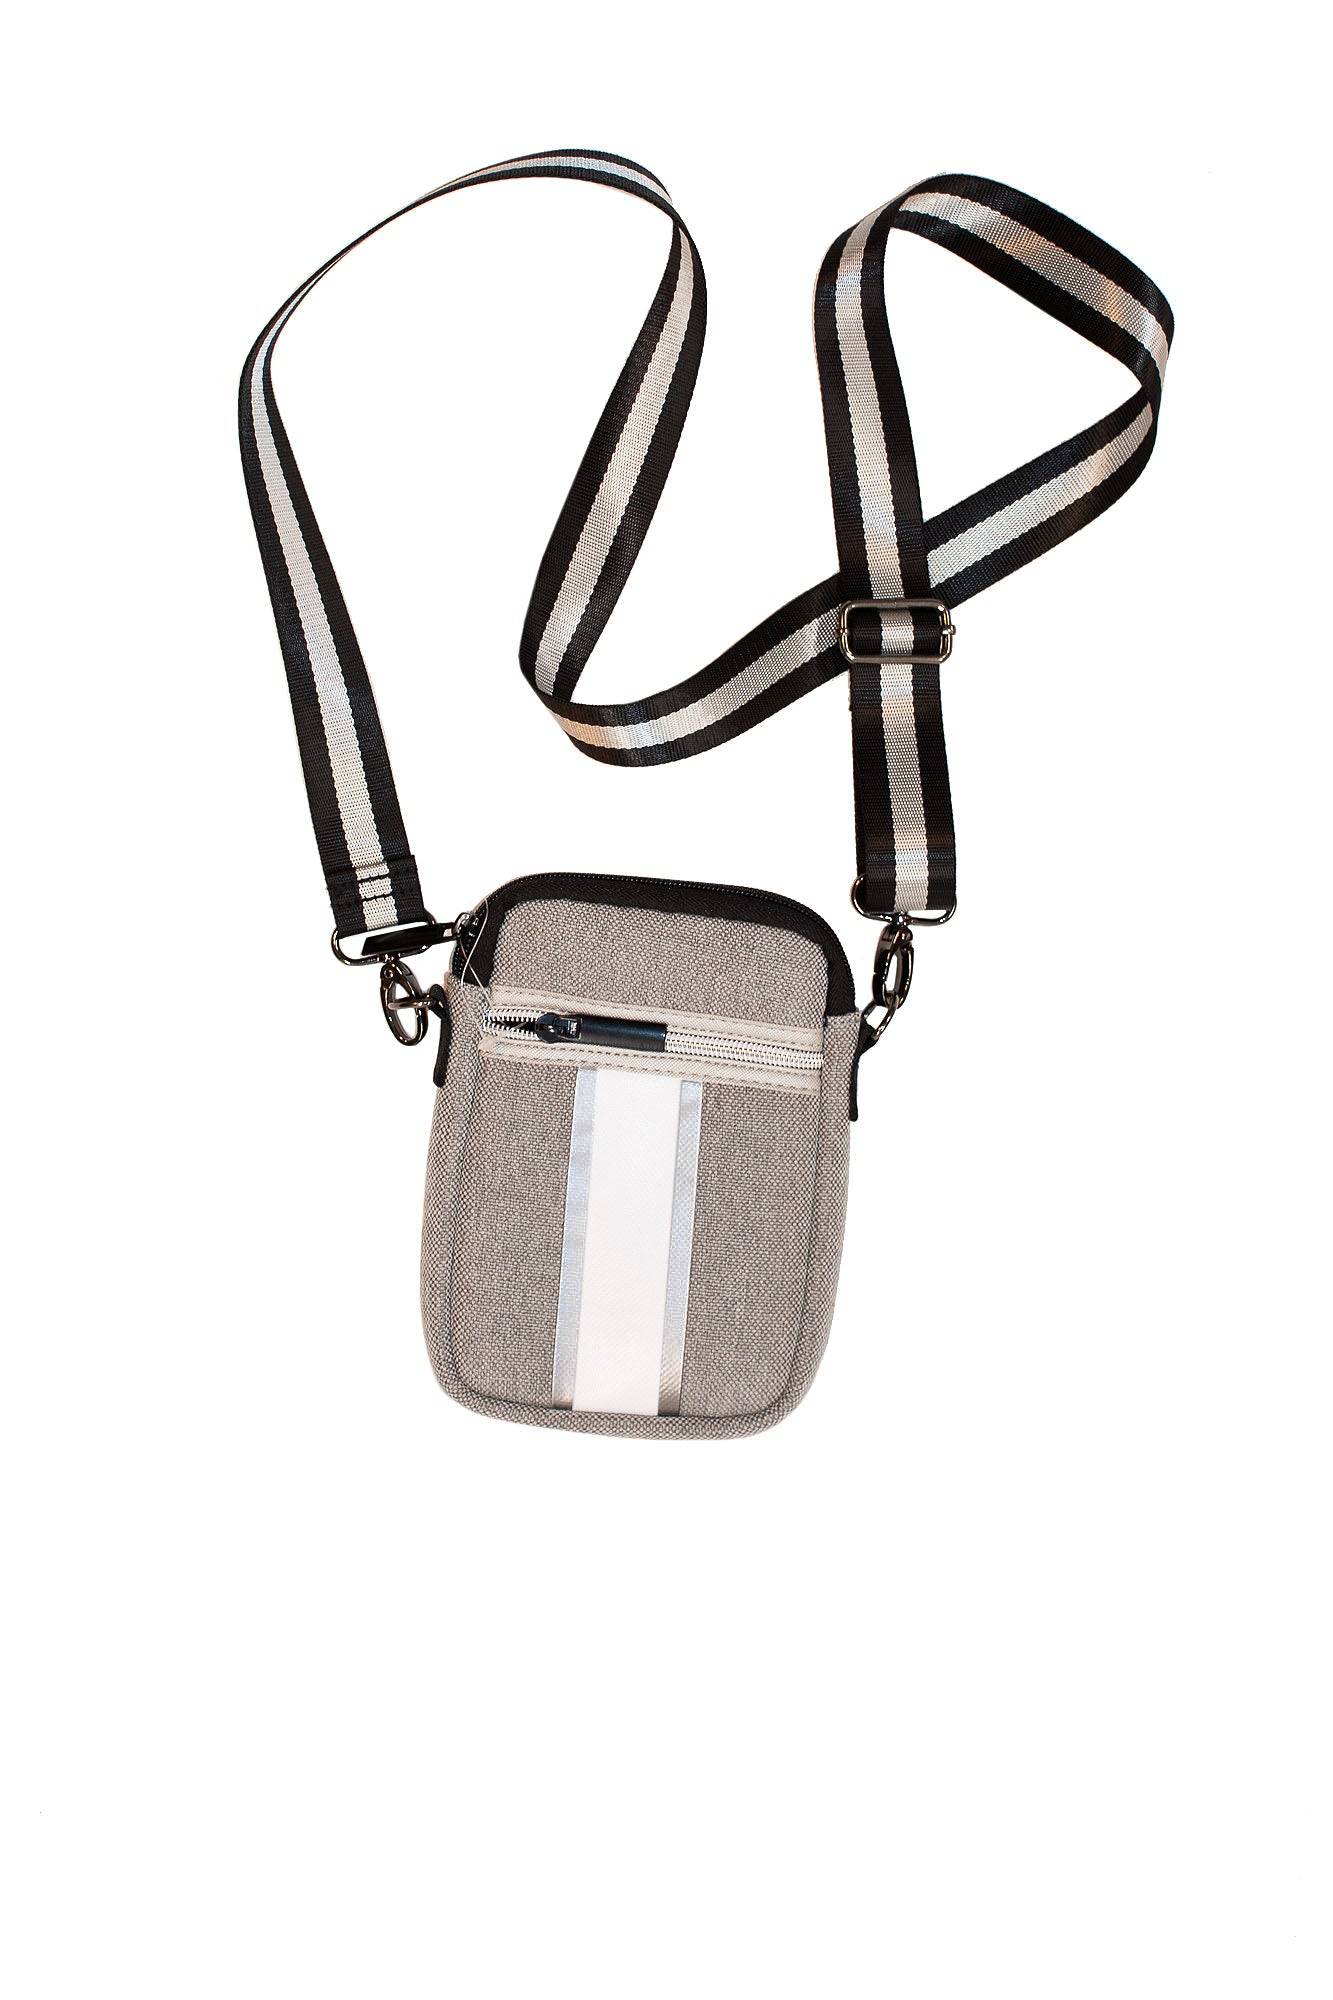 Haute Shore - Casey Gray Linen Cell Phone Crossbody (Casey, Gray Linen)